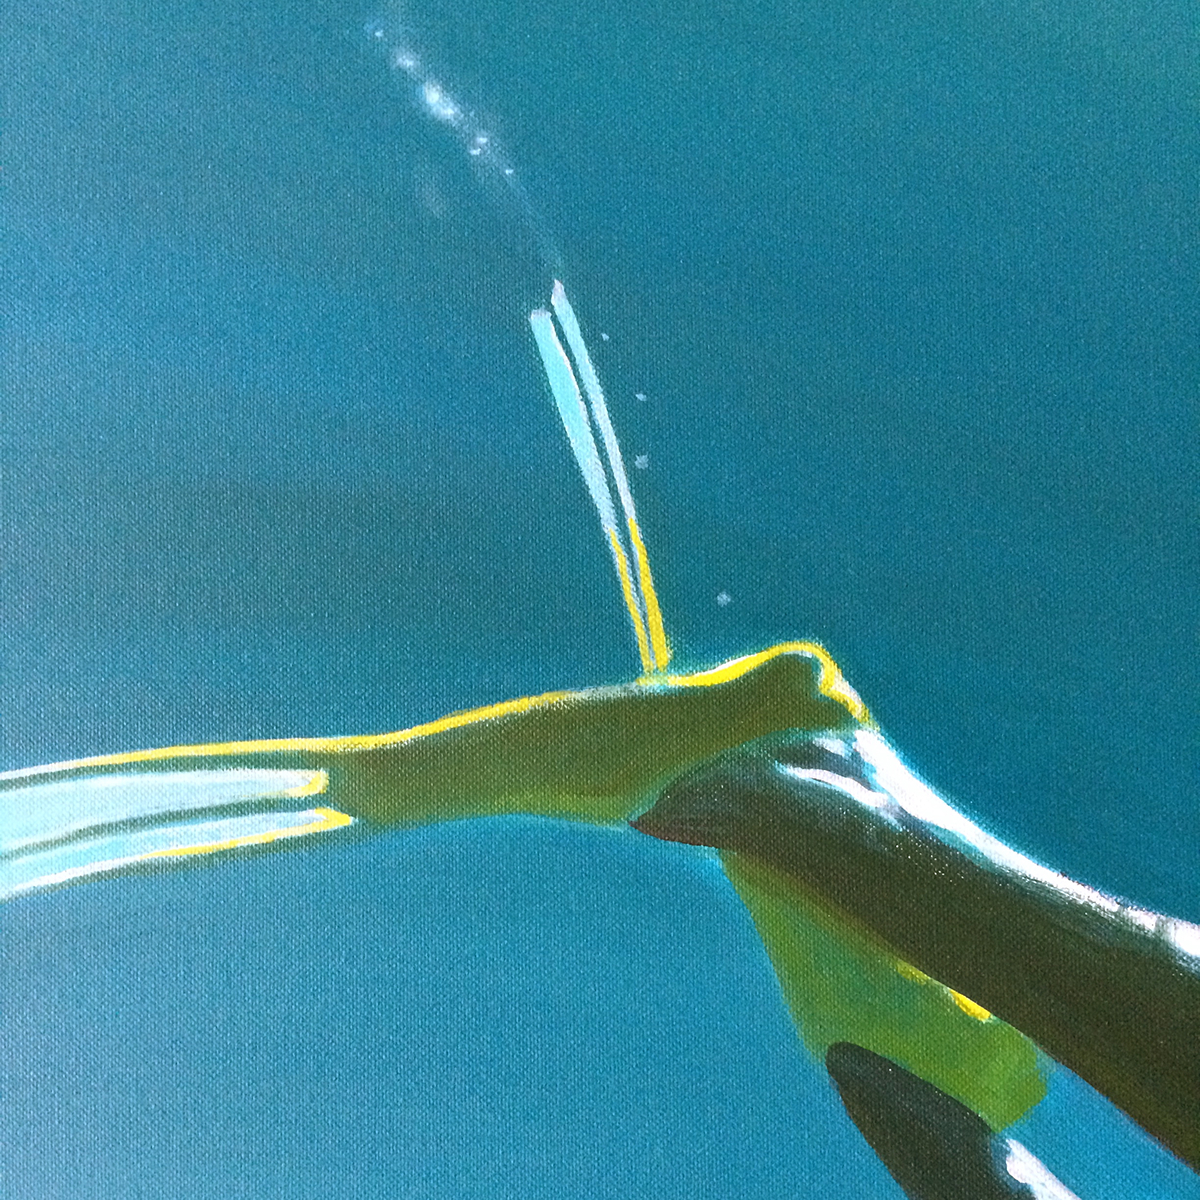 Detail of a canvas painting of a swimmer, focusing on their yellow-flippered feet, against an ocean-blue backdrop.